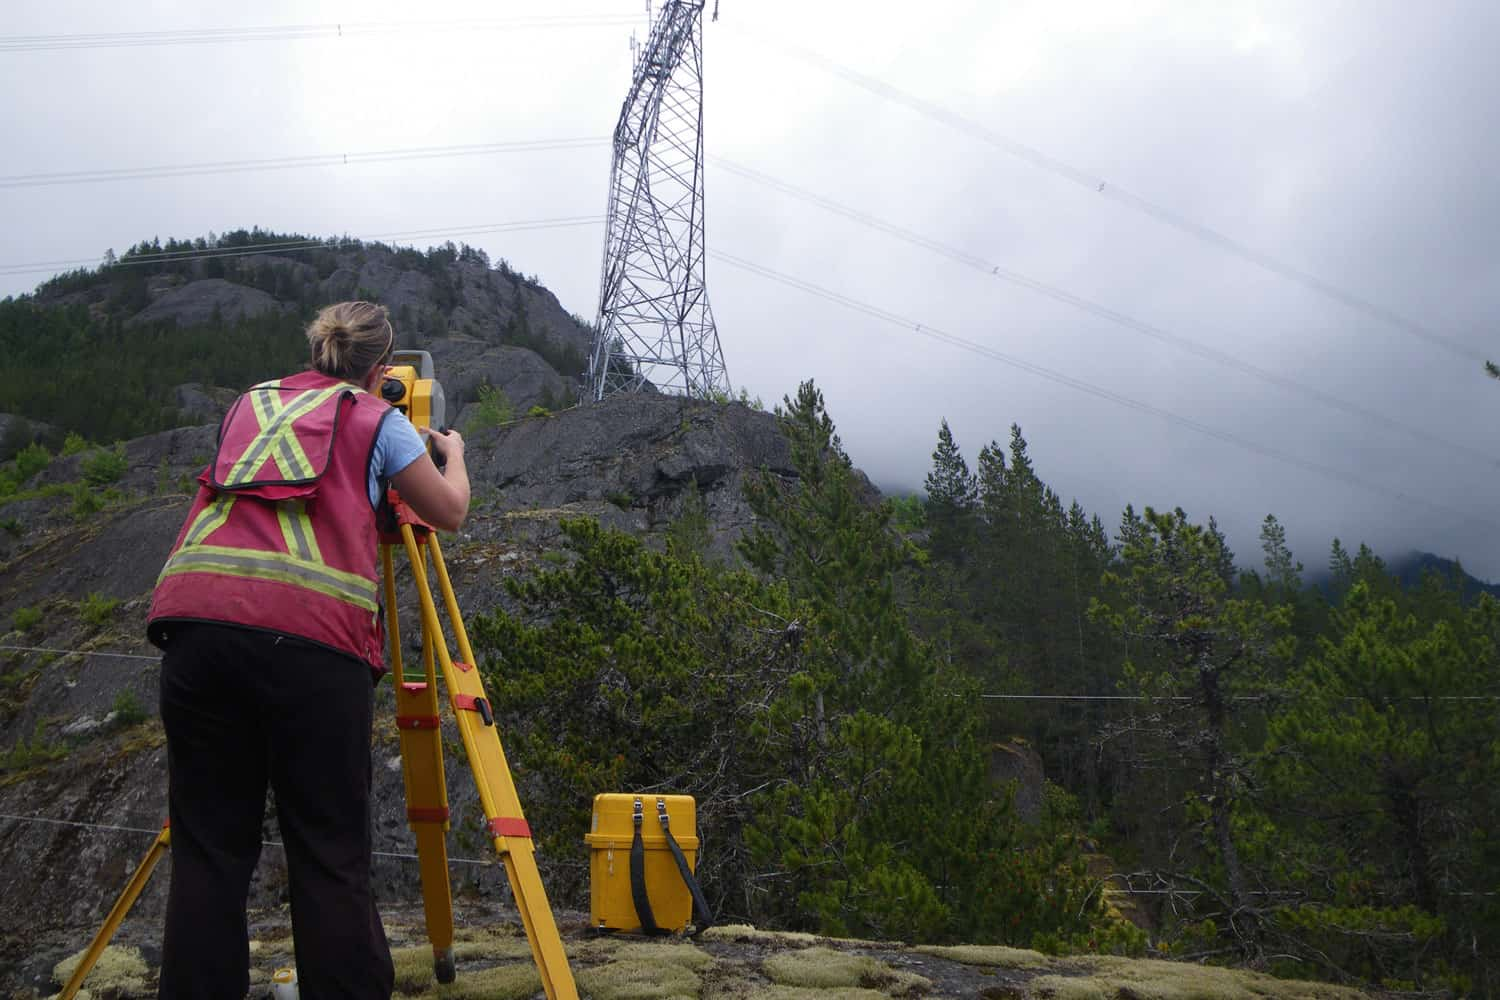 Geodetic positioning of GPS navigation antennas for NAV Canada for the 2010 Winter Olympic games, E. Freeman, 2008.